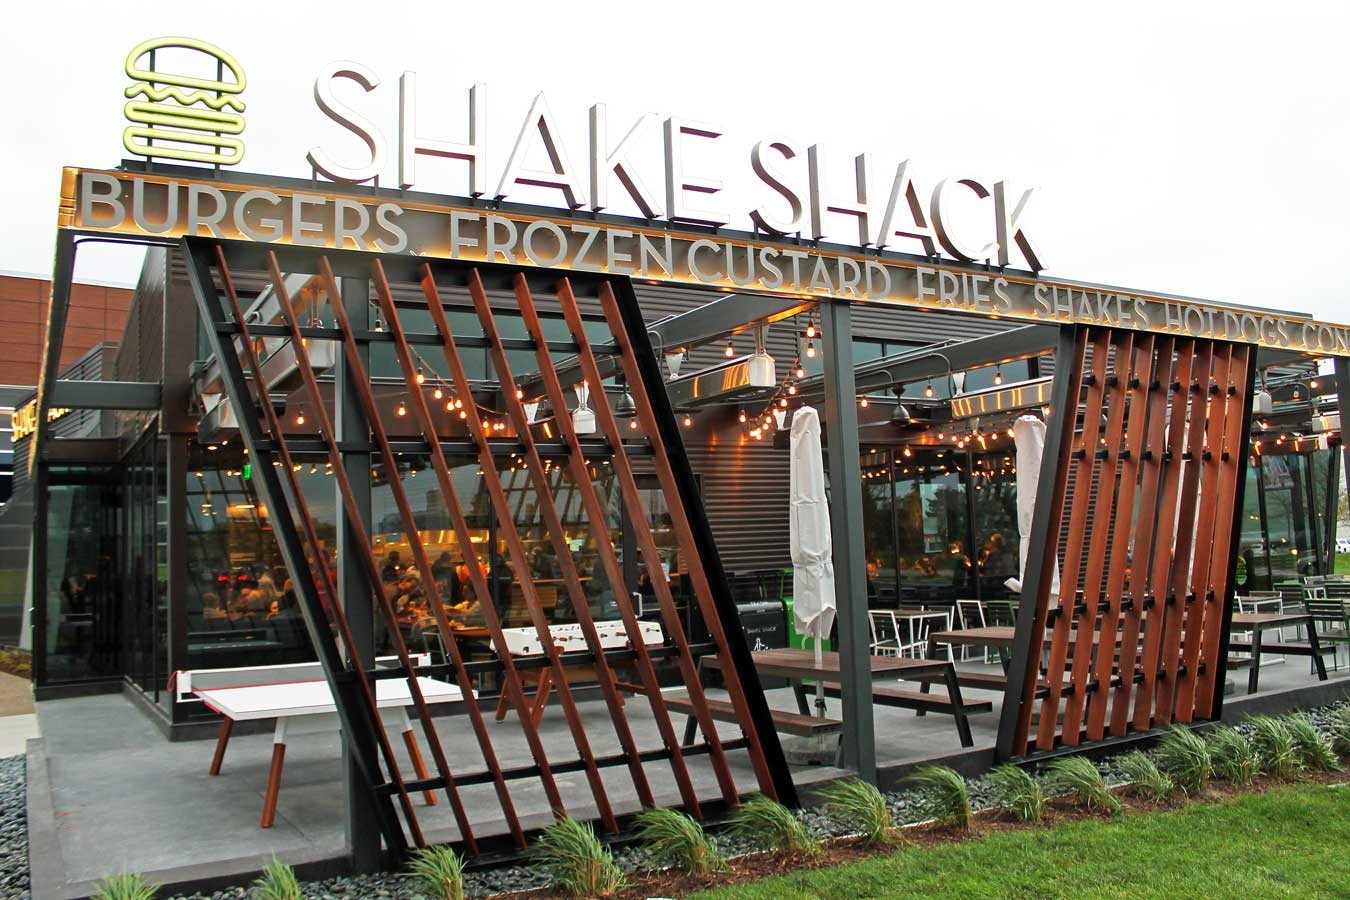 Shake Shack In Troy: Patio Dining, Foosball, And Sister Pie (Oh My) - via Wading in Big Shoes